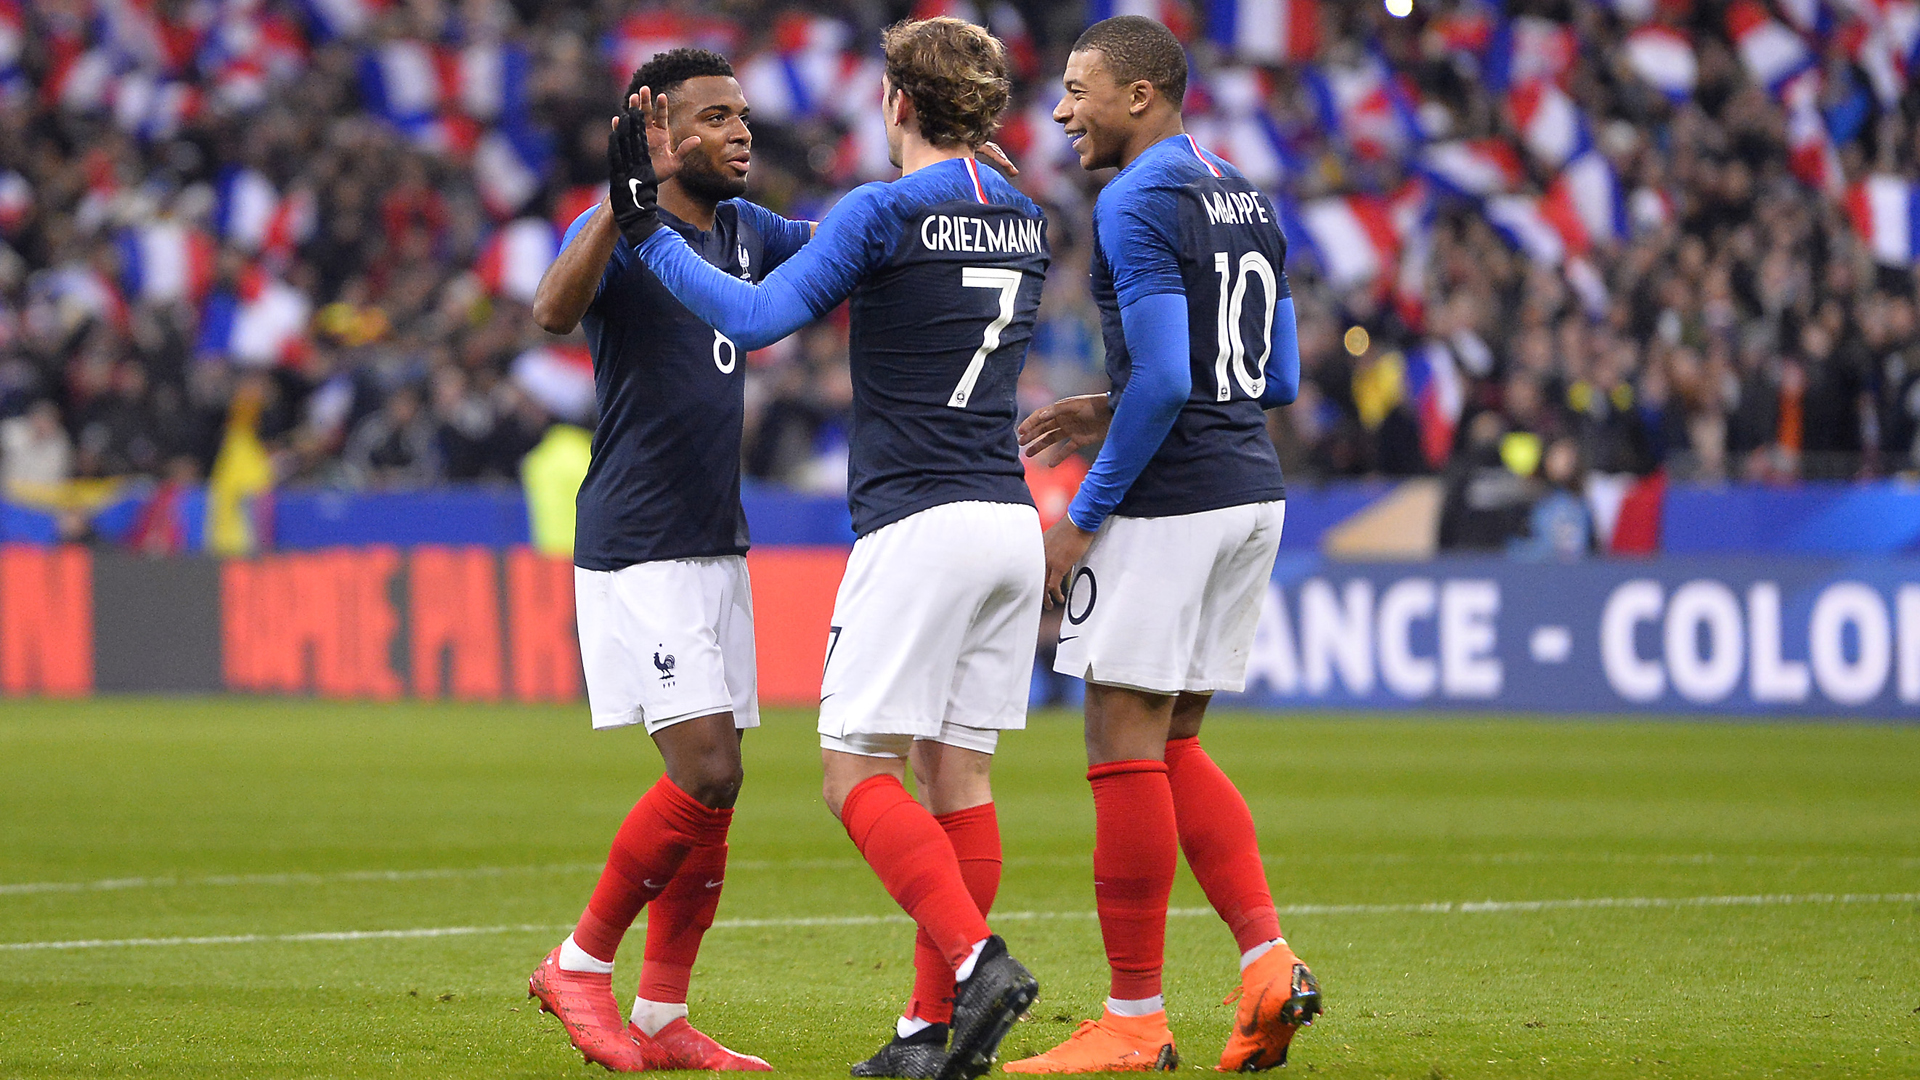 France striker Antoine Griezmann says 'it was a penalty' vs. Australia